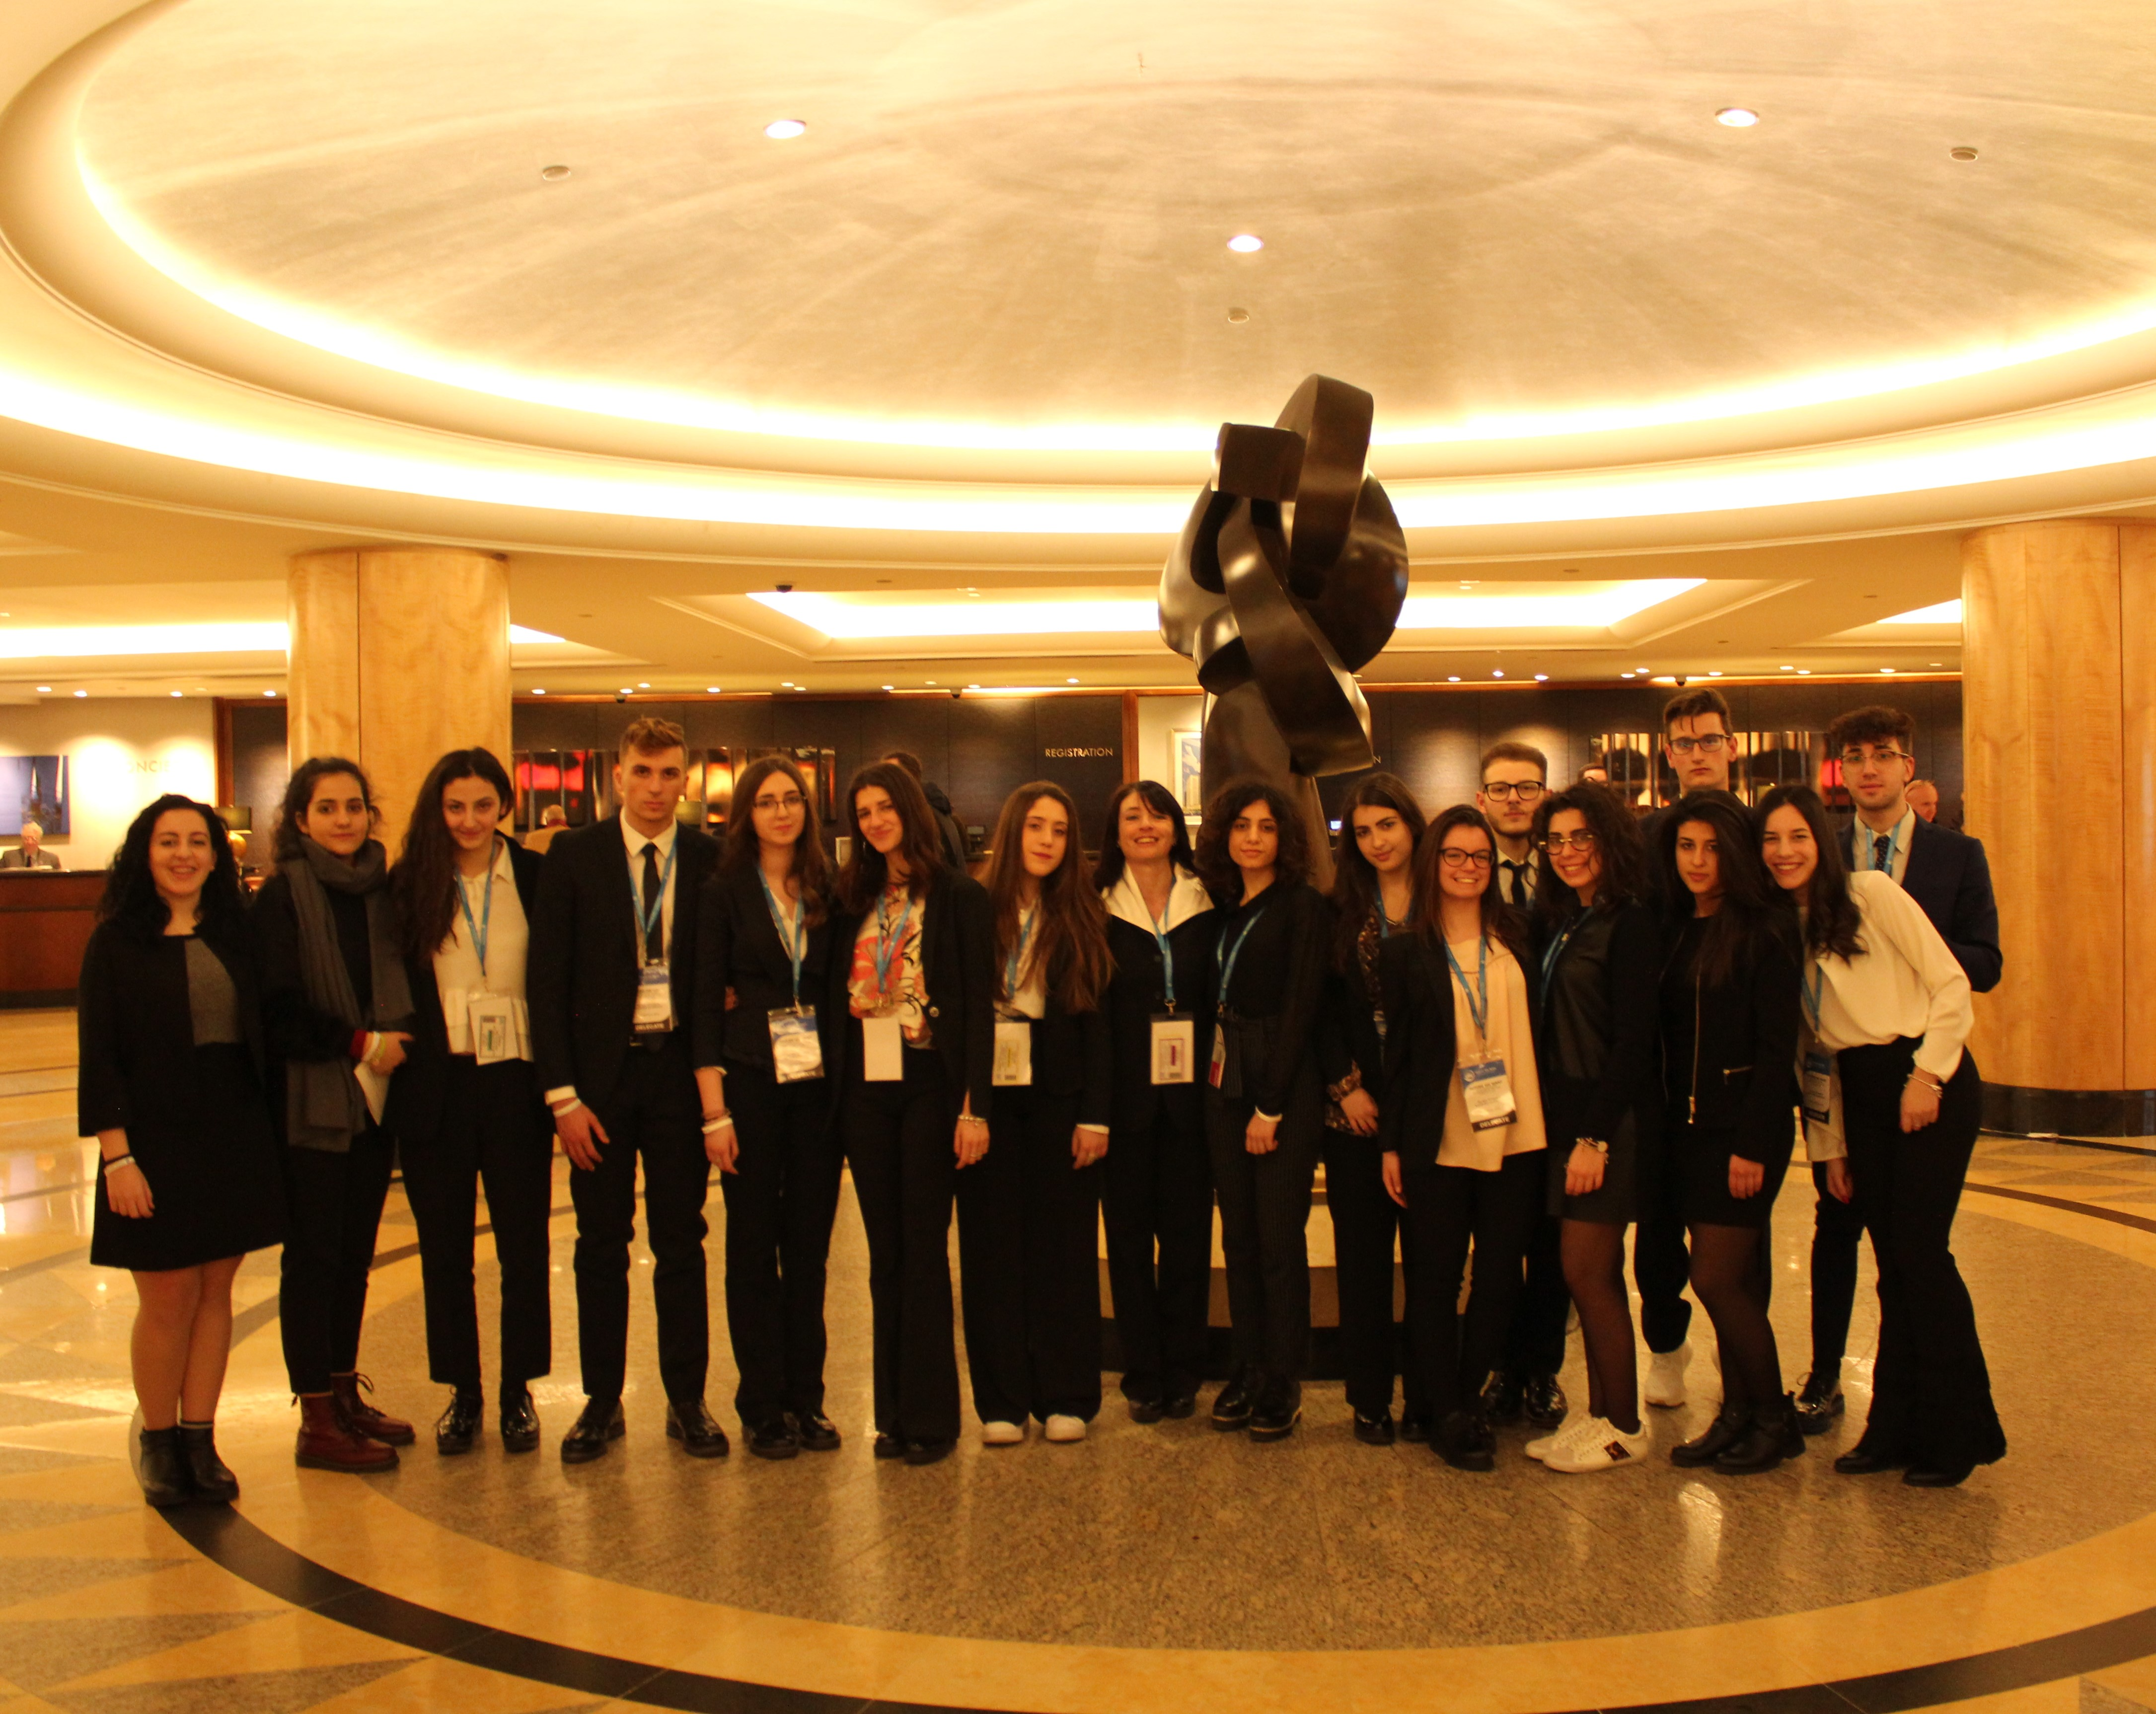 FUTURE WE WANT. MODEL UNITED NATIONS. STUDENTS AS YOUNG LEADERS